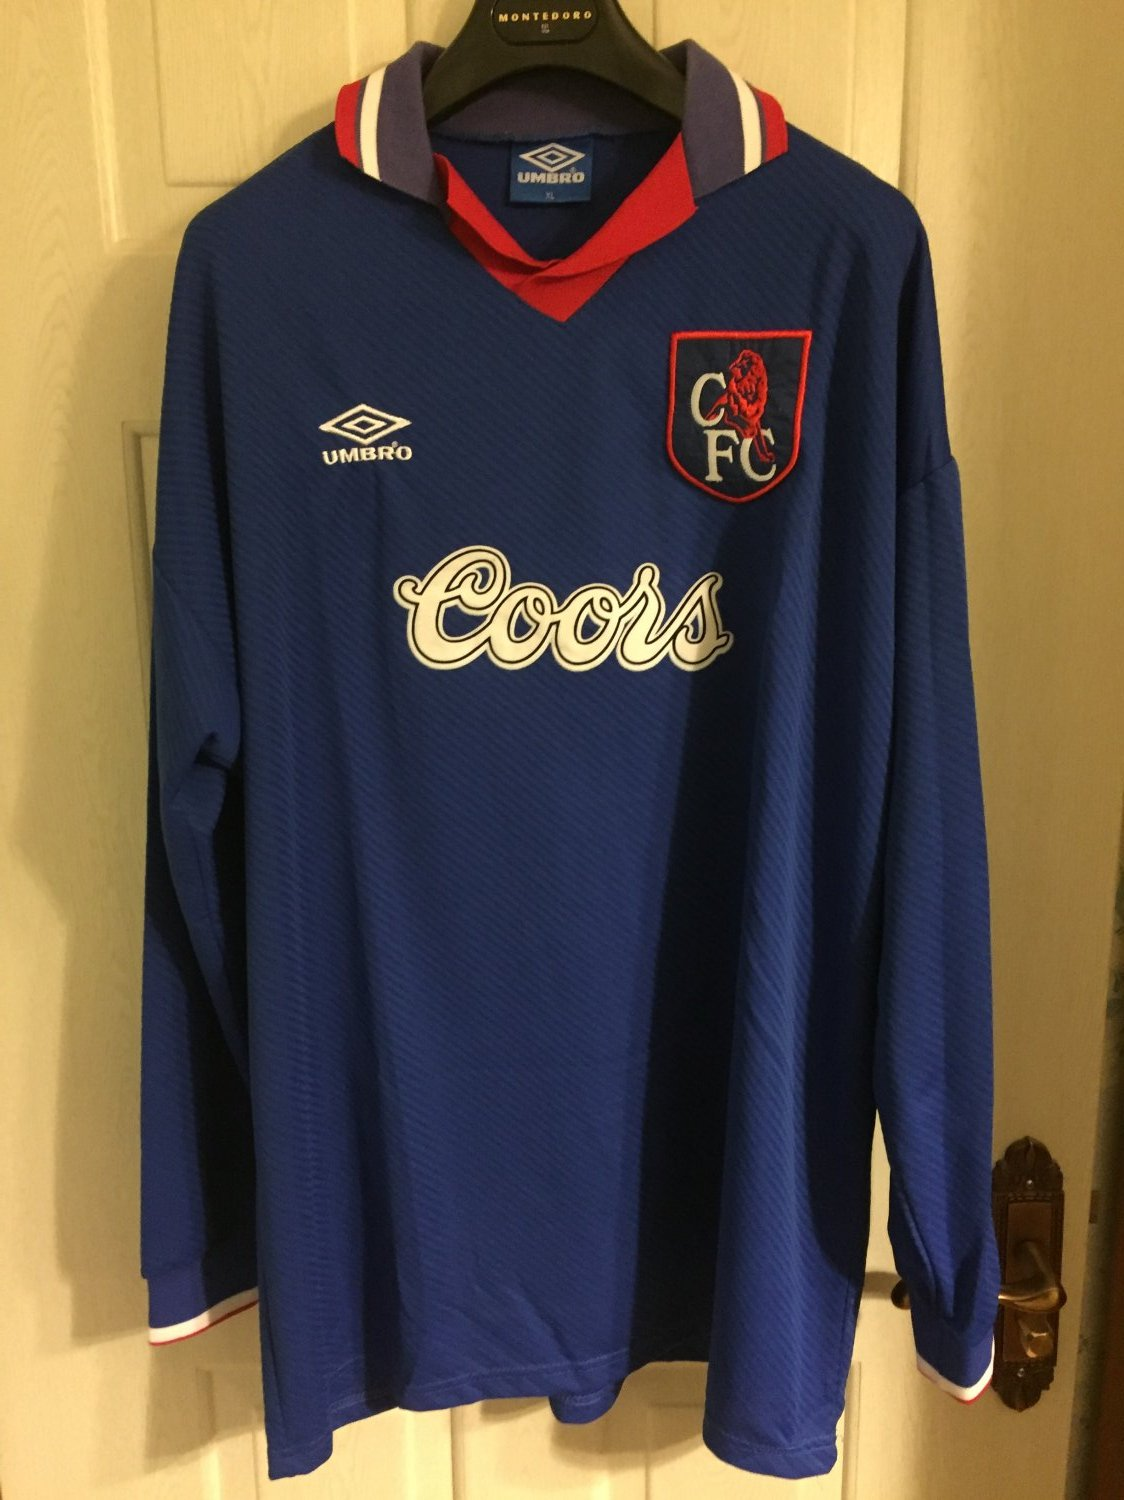 outlet store adaec 446f2 Chelsea Home football shirt 1994 - 1995. Sponsored by Coors